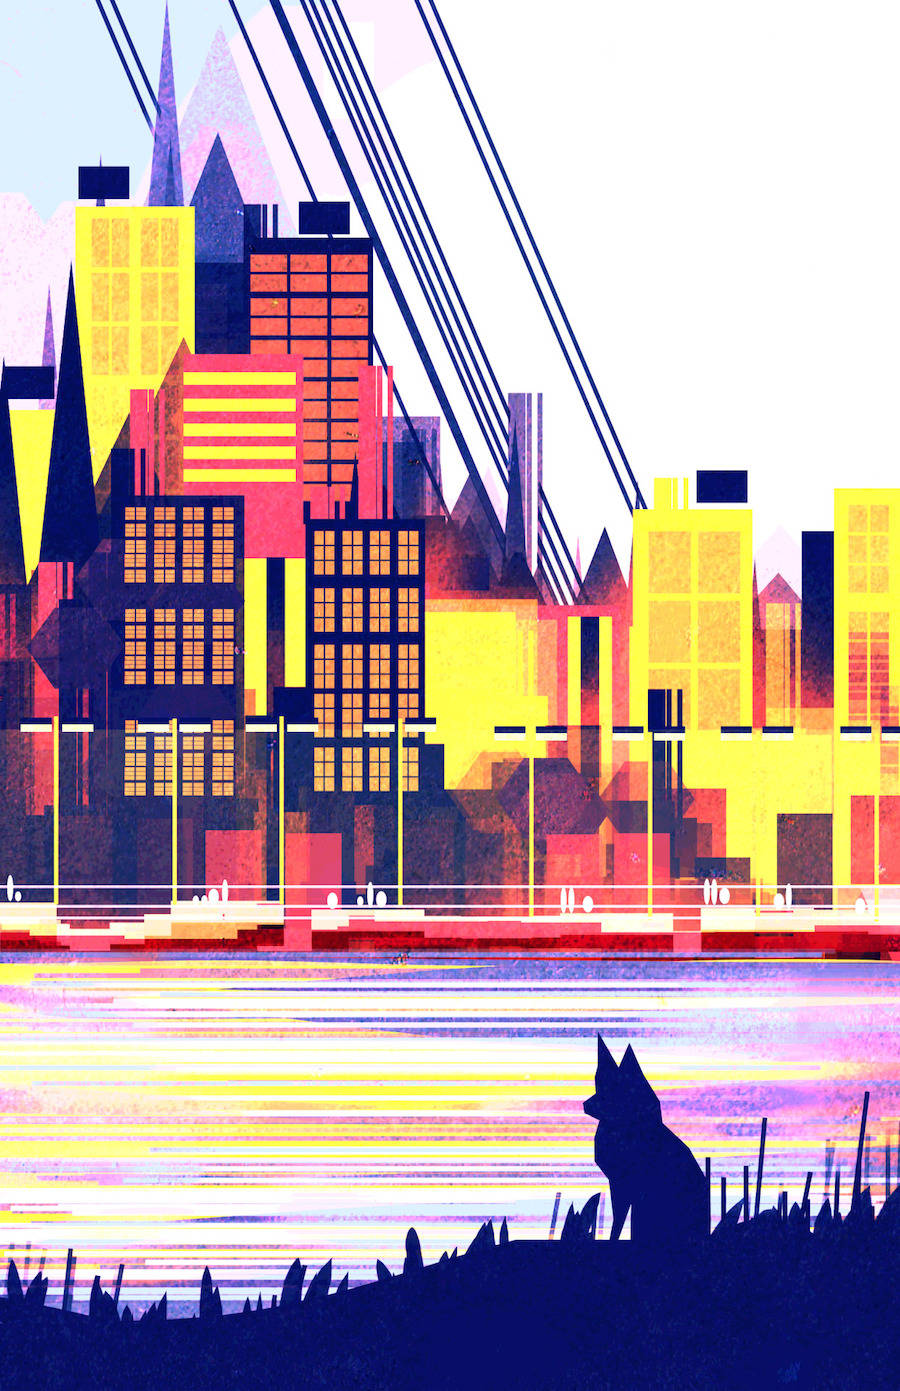 Geometric and Colorful 2D Illustrations of Cities